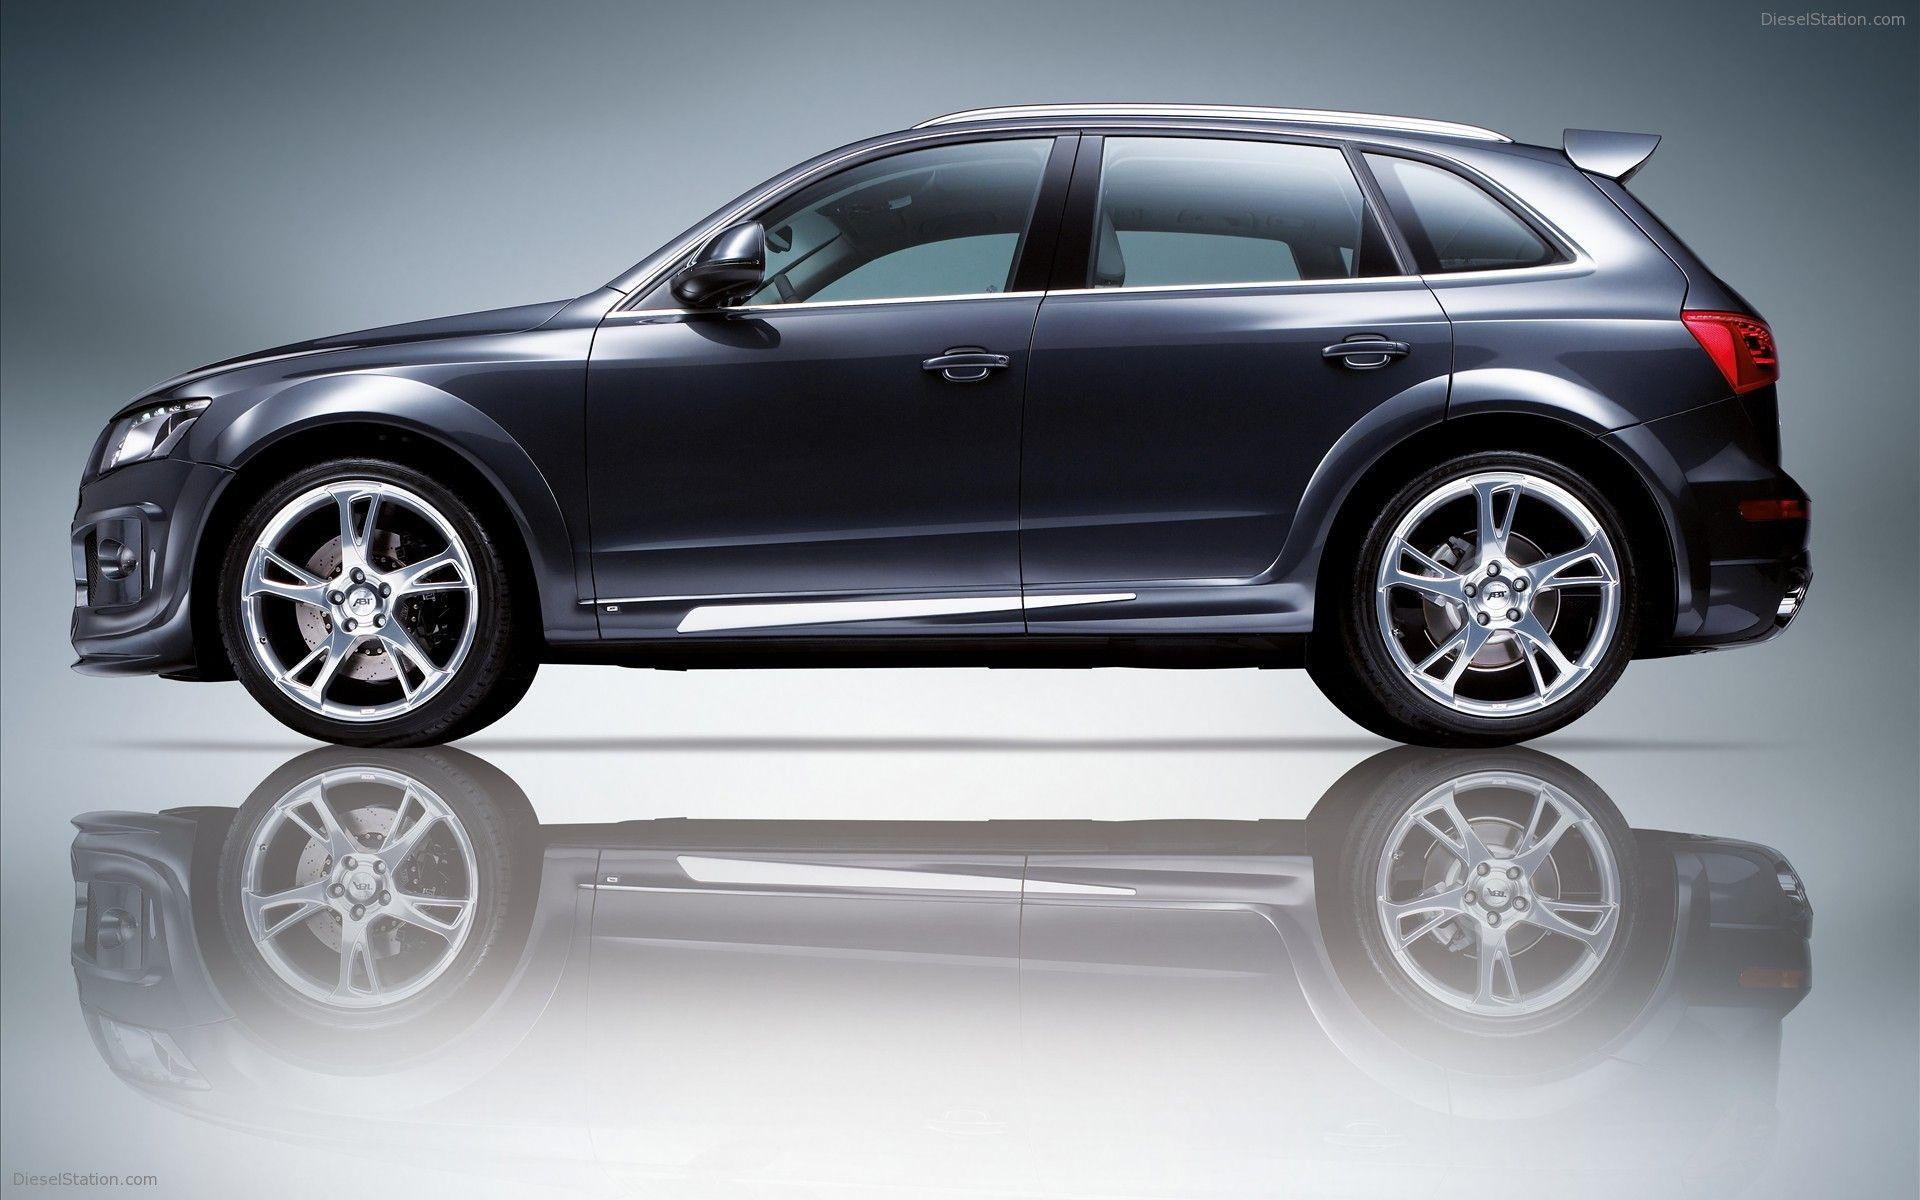 Abt Audi Q5 2009 Widescreen Exotic Car Wallpapers of 10 : Diesel